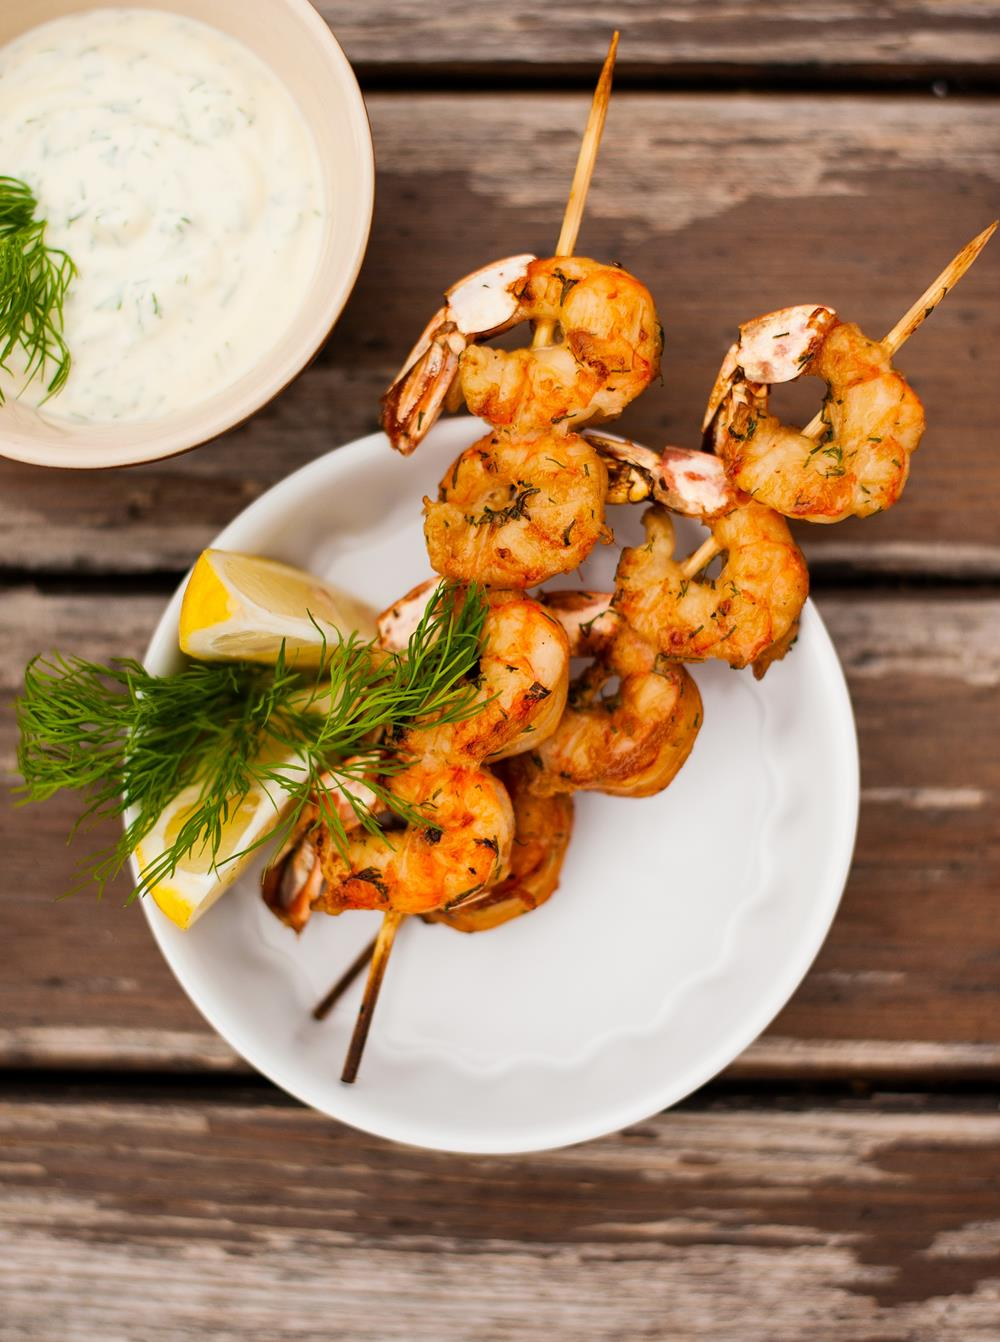 Online Personal Trainer Lunch Recipes - Hot & Spicy Prawns.jpg